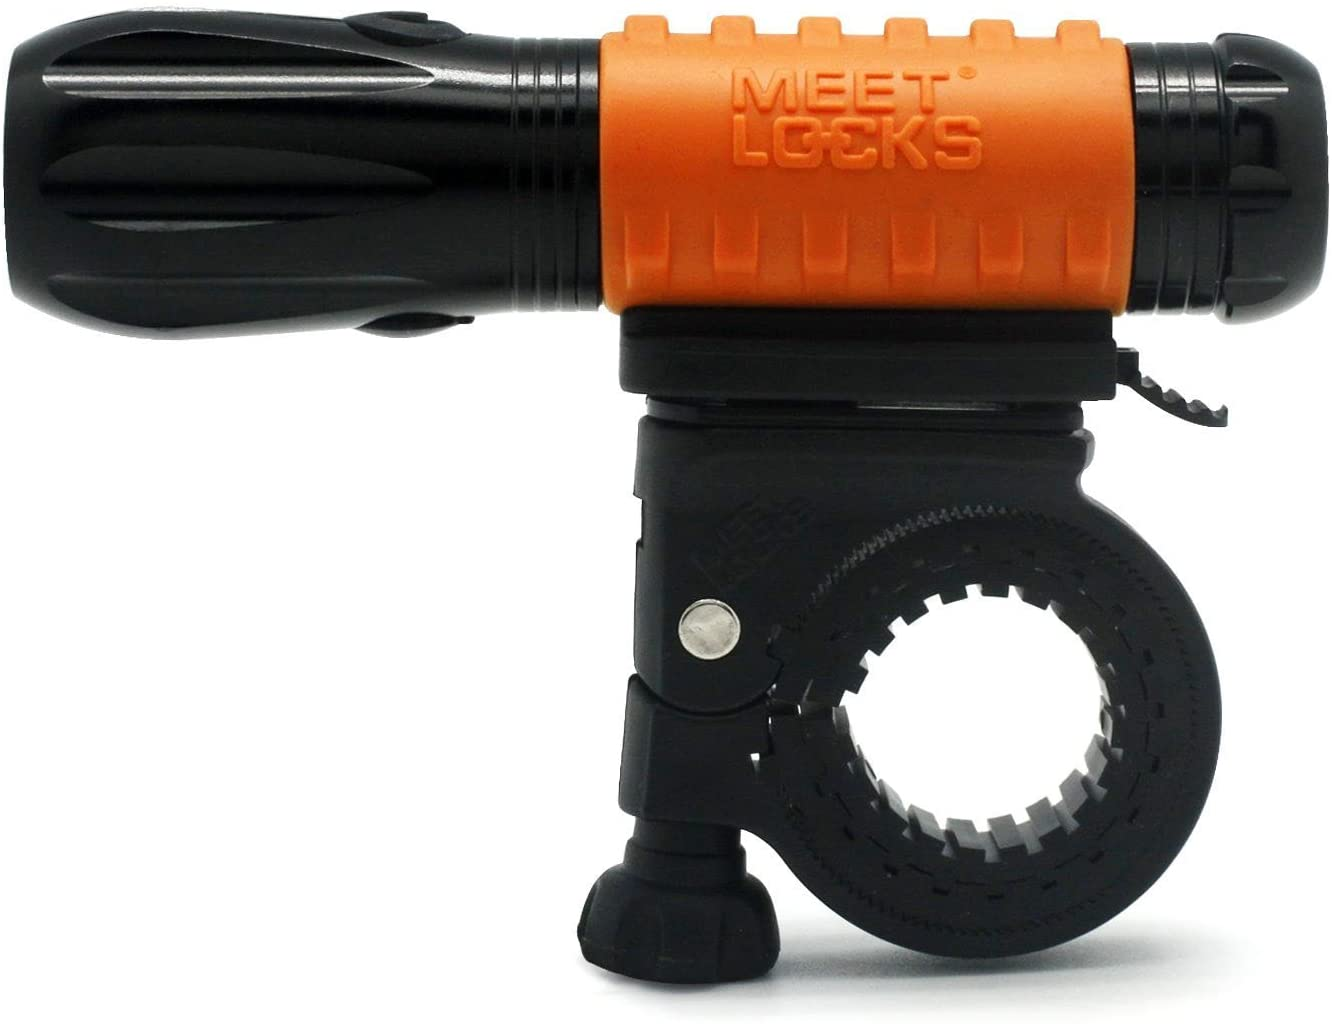 MEETLOCKS Super Bright USB Rechargeable Bike Torch, High Intensity Cree Q3 LED and USB